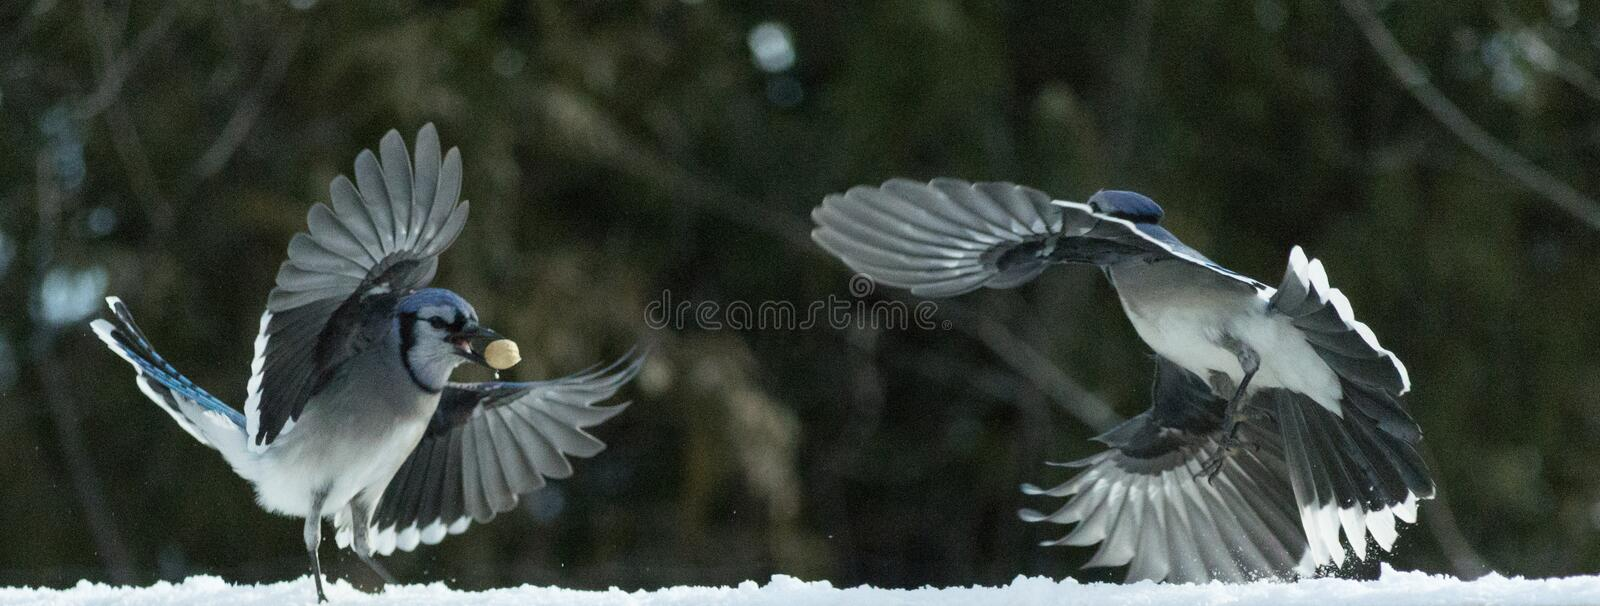 Two bluejays flying in the snow royalty free stock photography